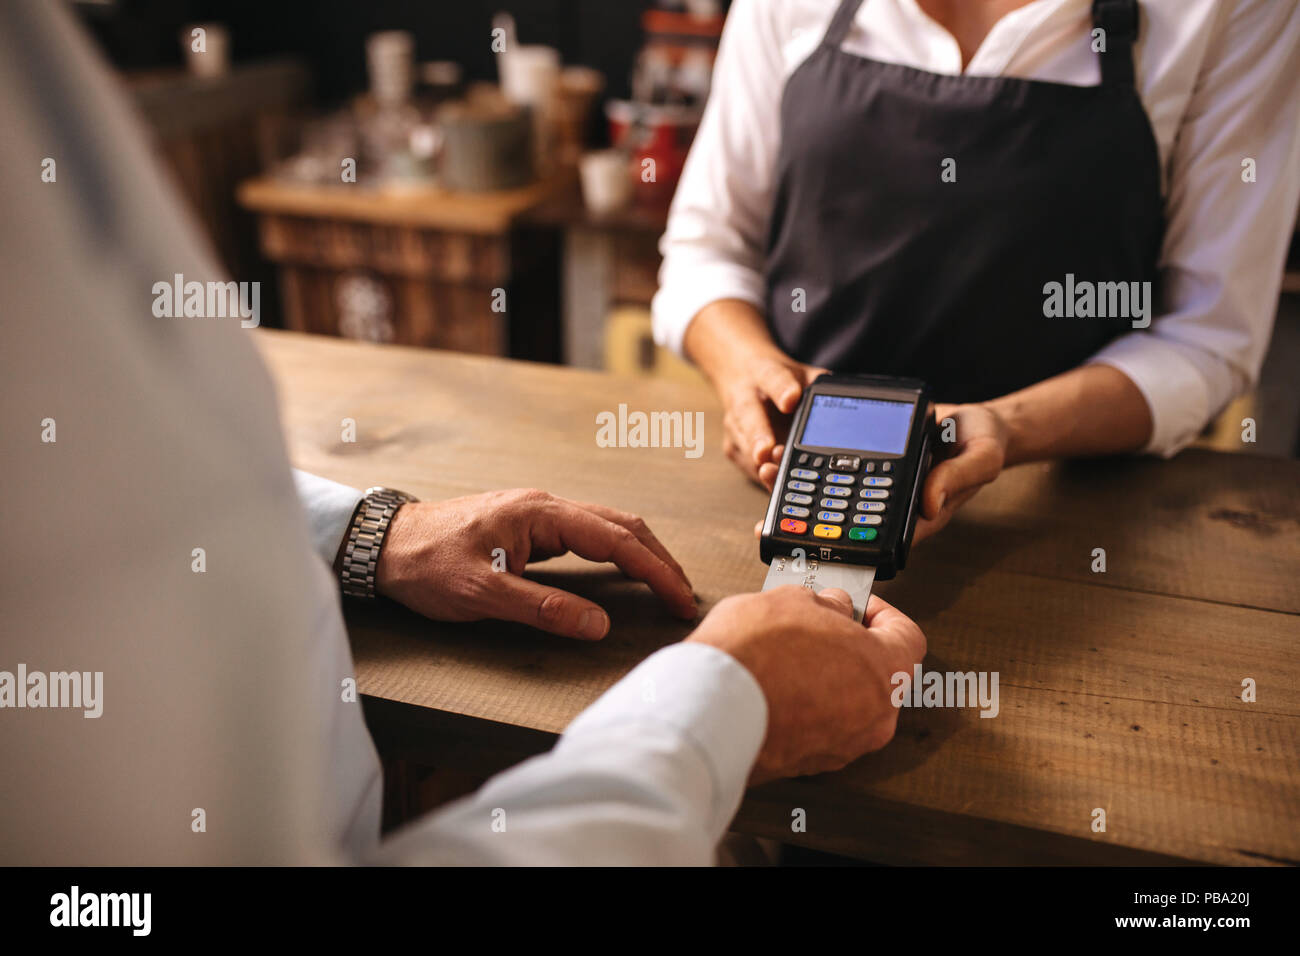 Cropped shot of male customer paying for coffee by credit card at cafe. Woman barista holding a credit card reader machine with man doing payment on c - Stock Image